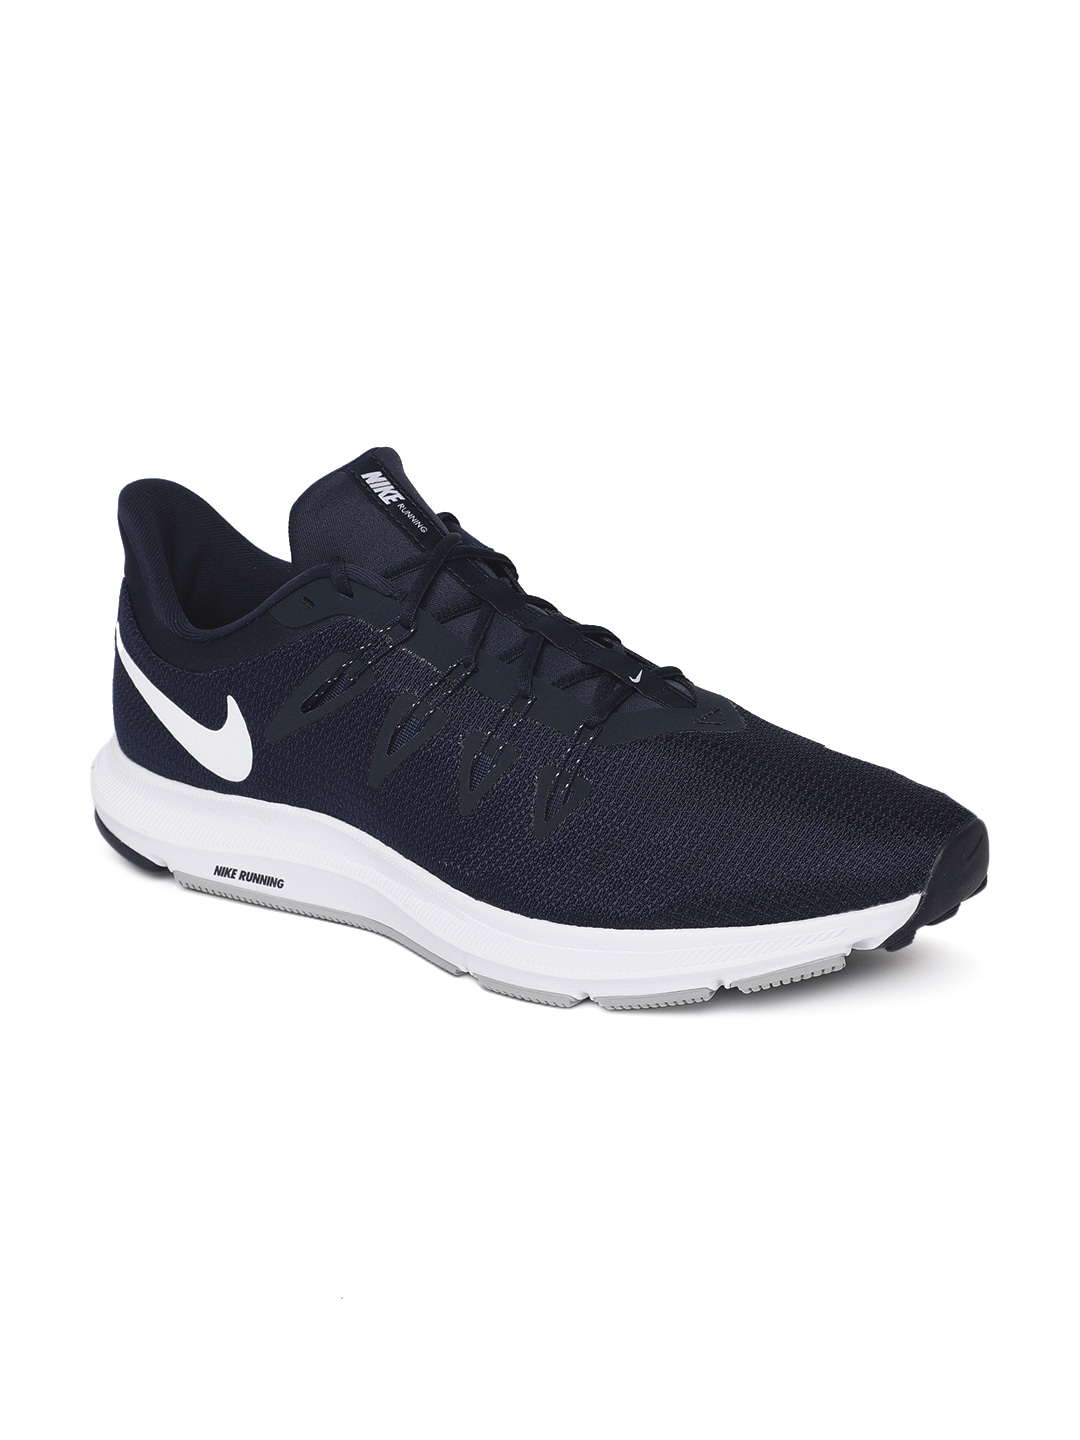 ea67c47004e Nike Running Shoes - Buy Nike Running Shoes Online